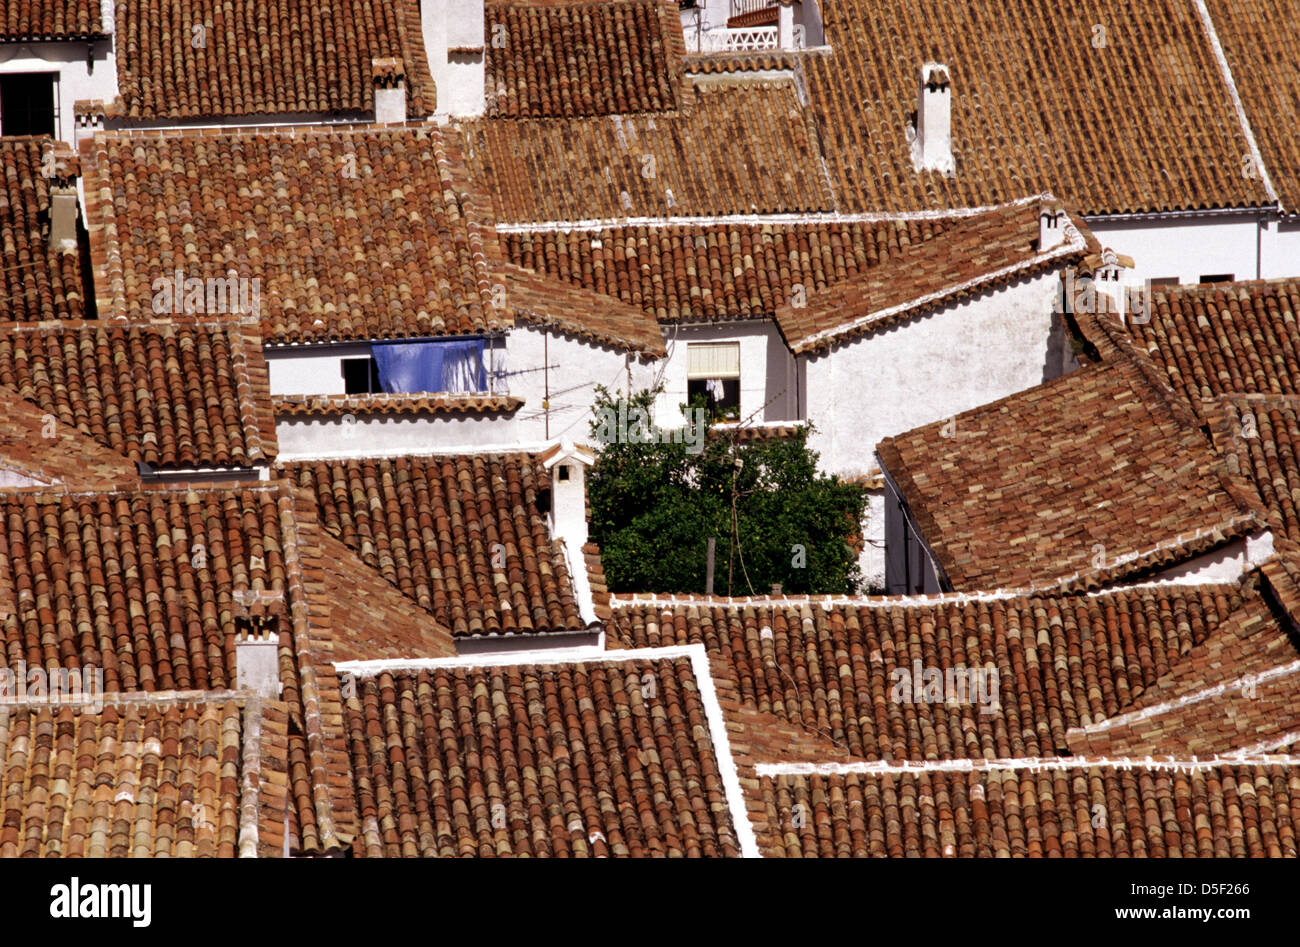 Typical whitewashed village with barrel roof tiles in the Pueblos Blancos region Arcos de la Frontera in Andalusia Stock Photo